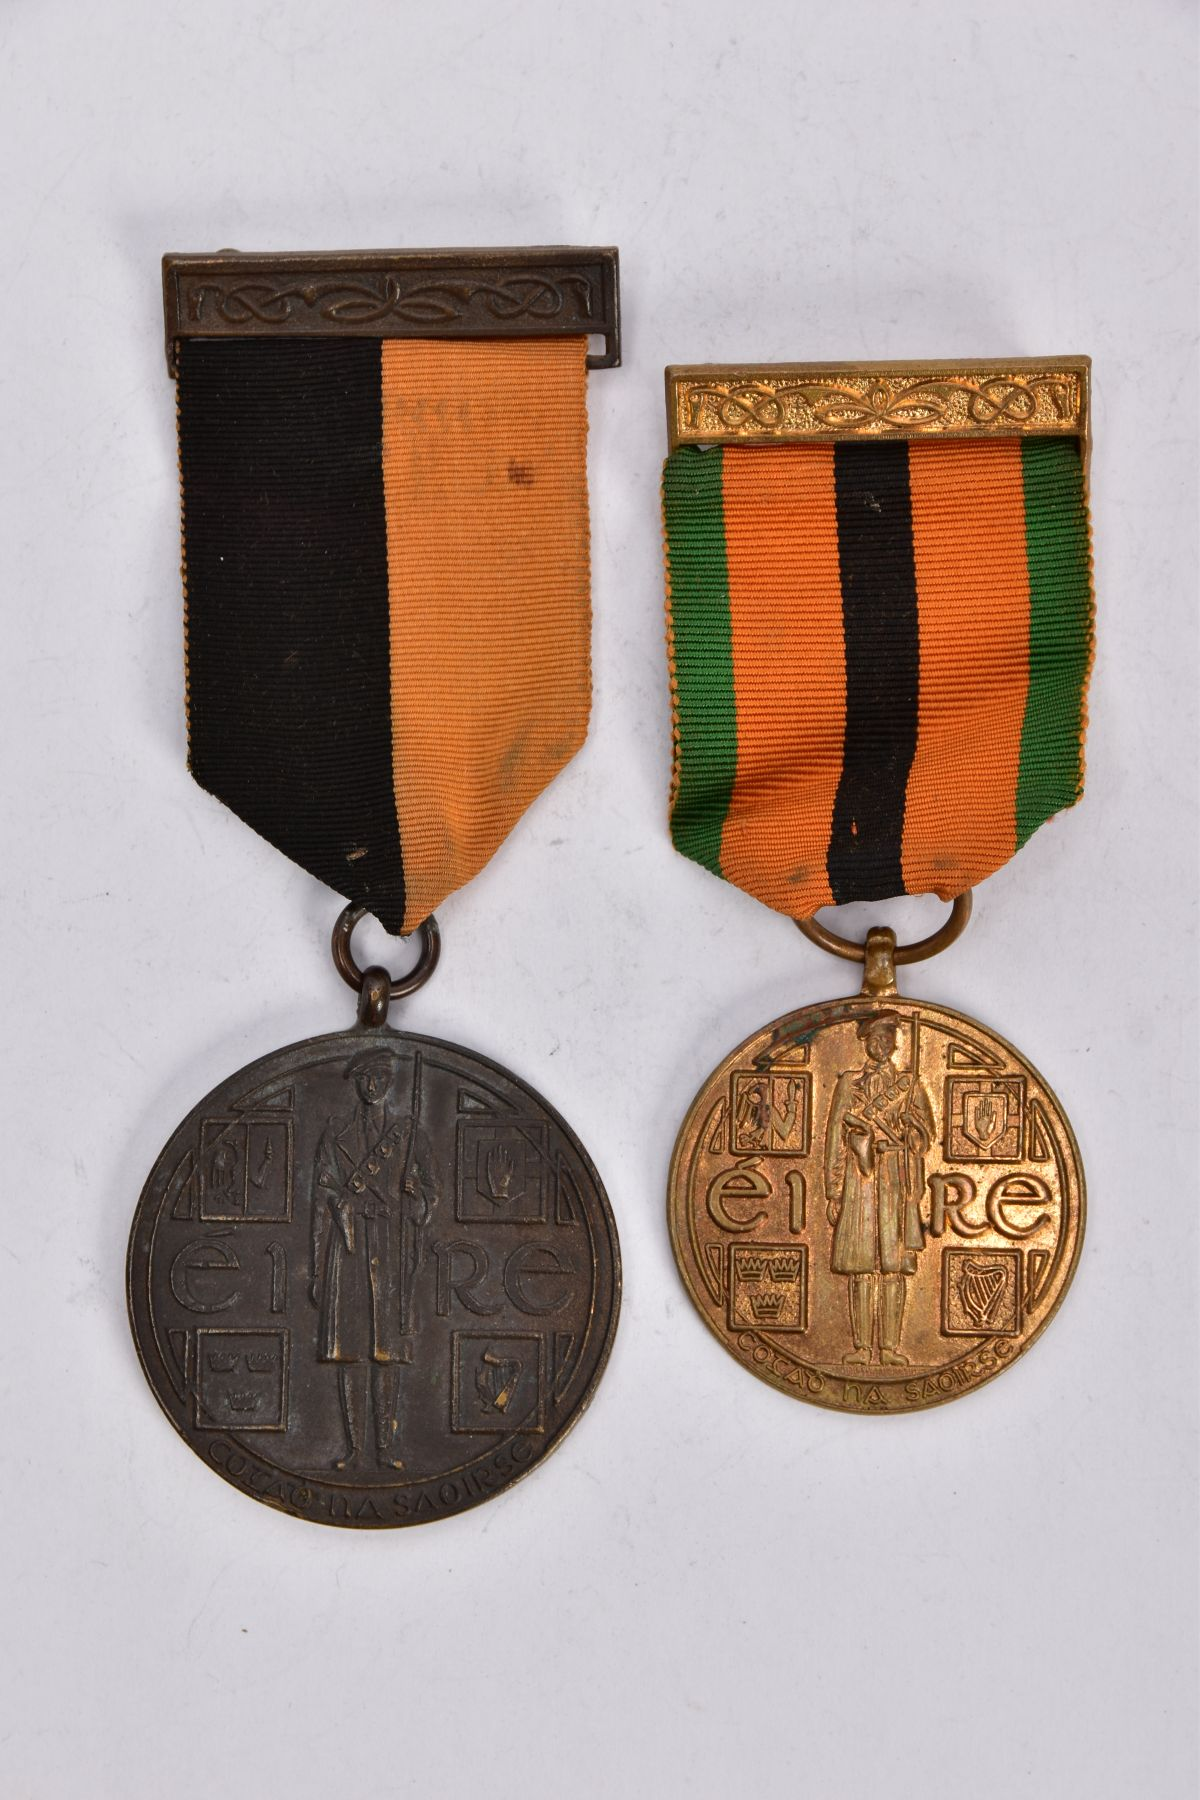 'IRISH WAR OF INDEPENDANCE MEDALS' both with wearing bar clasps, but believed to be later produced